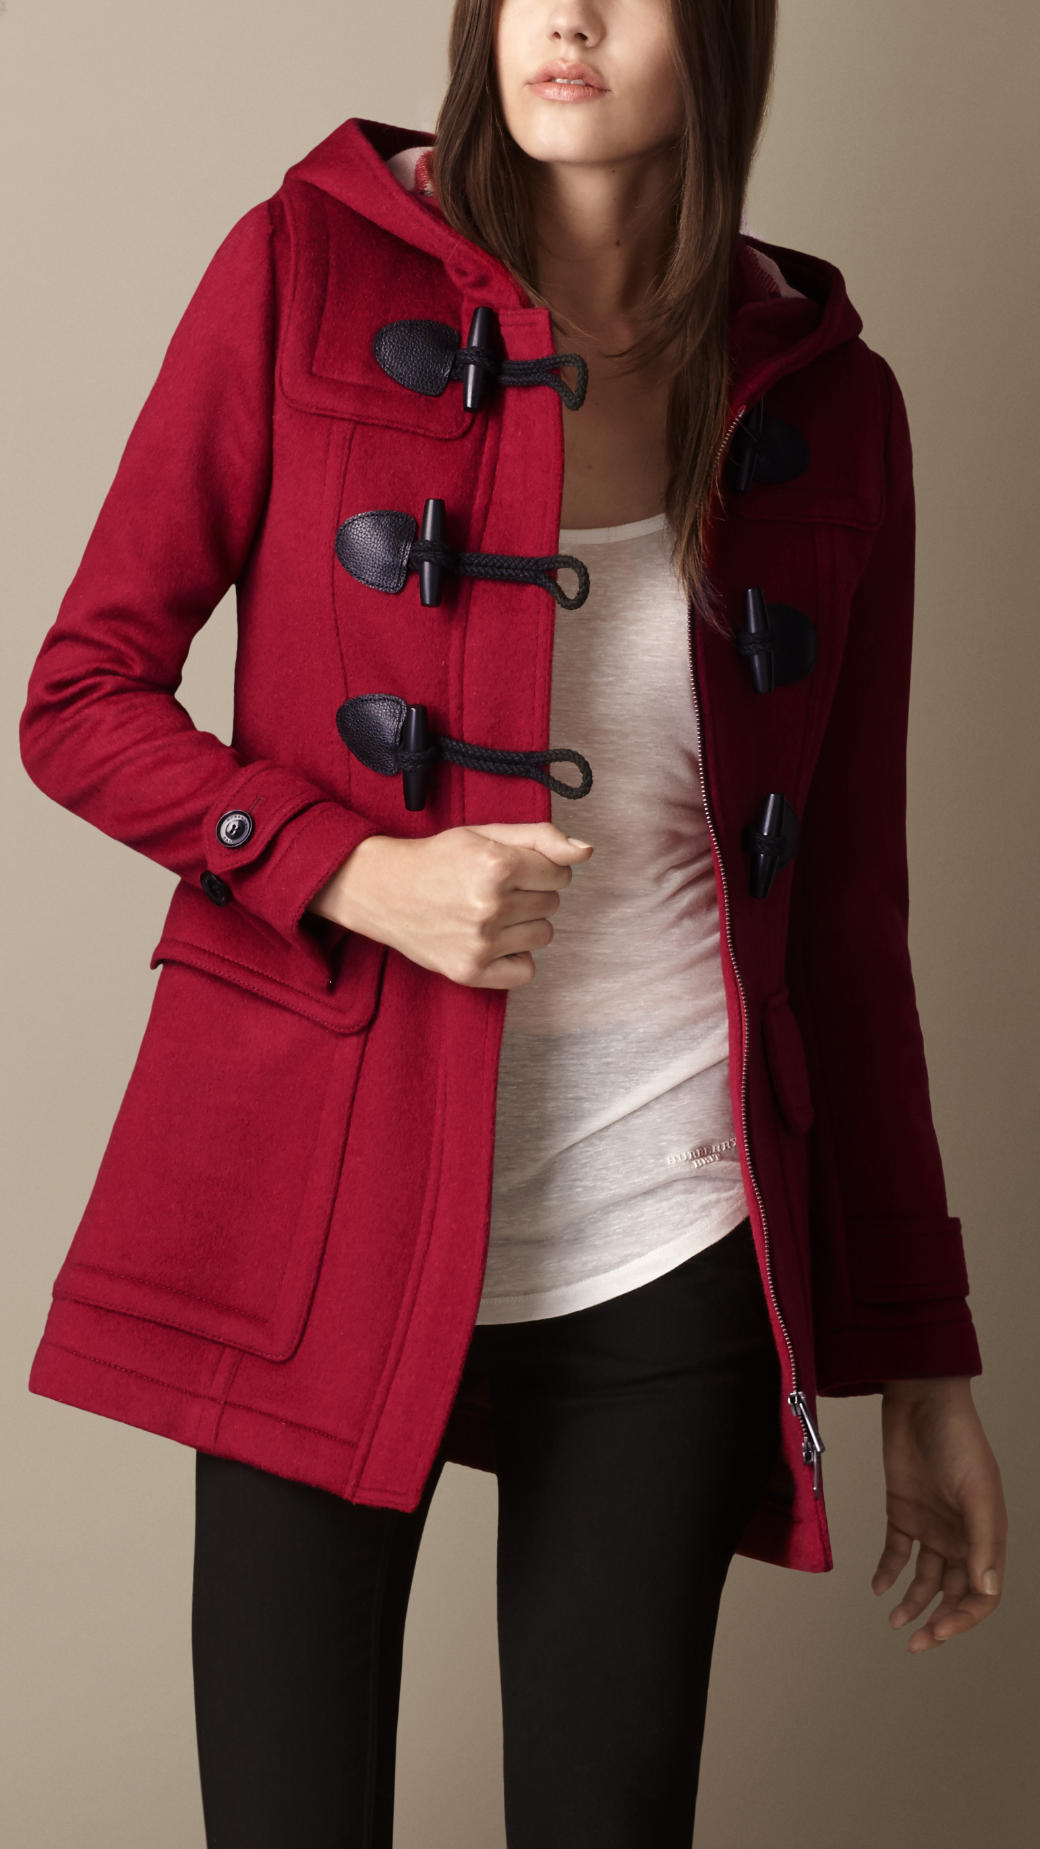 Burberry Wool Fitted Duffle Coat in Pink (claret pink) | Lyst